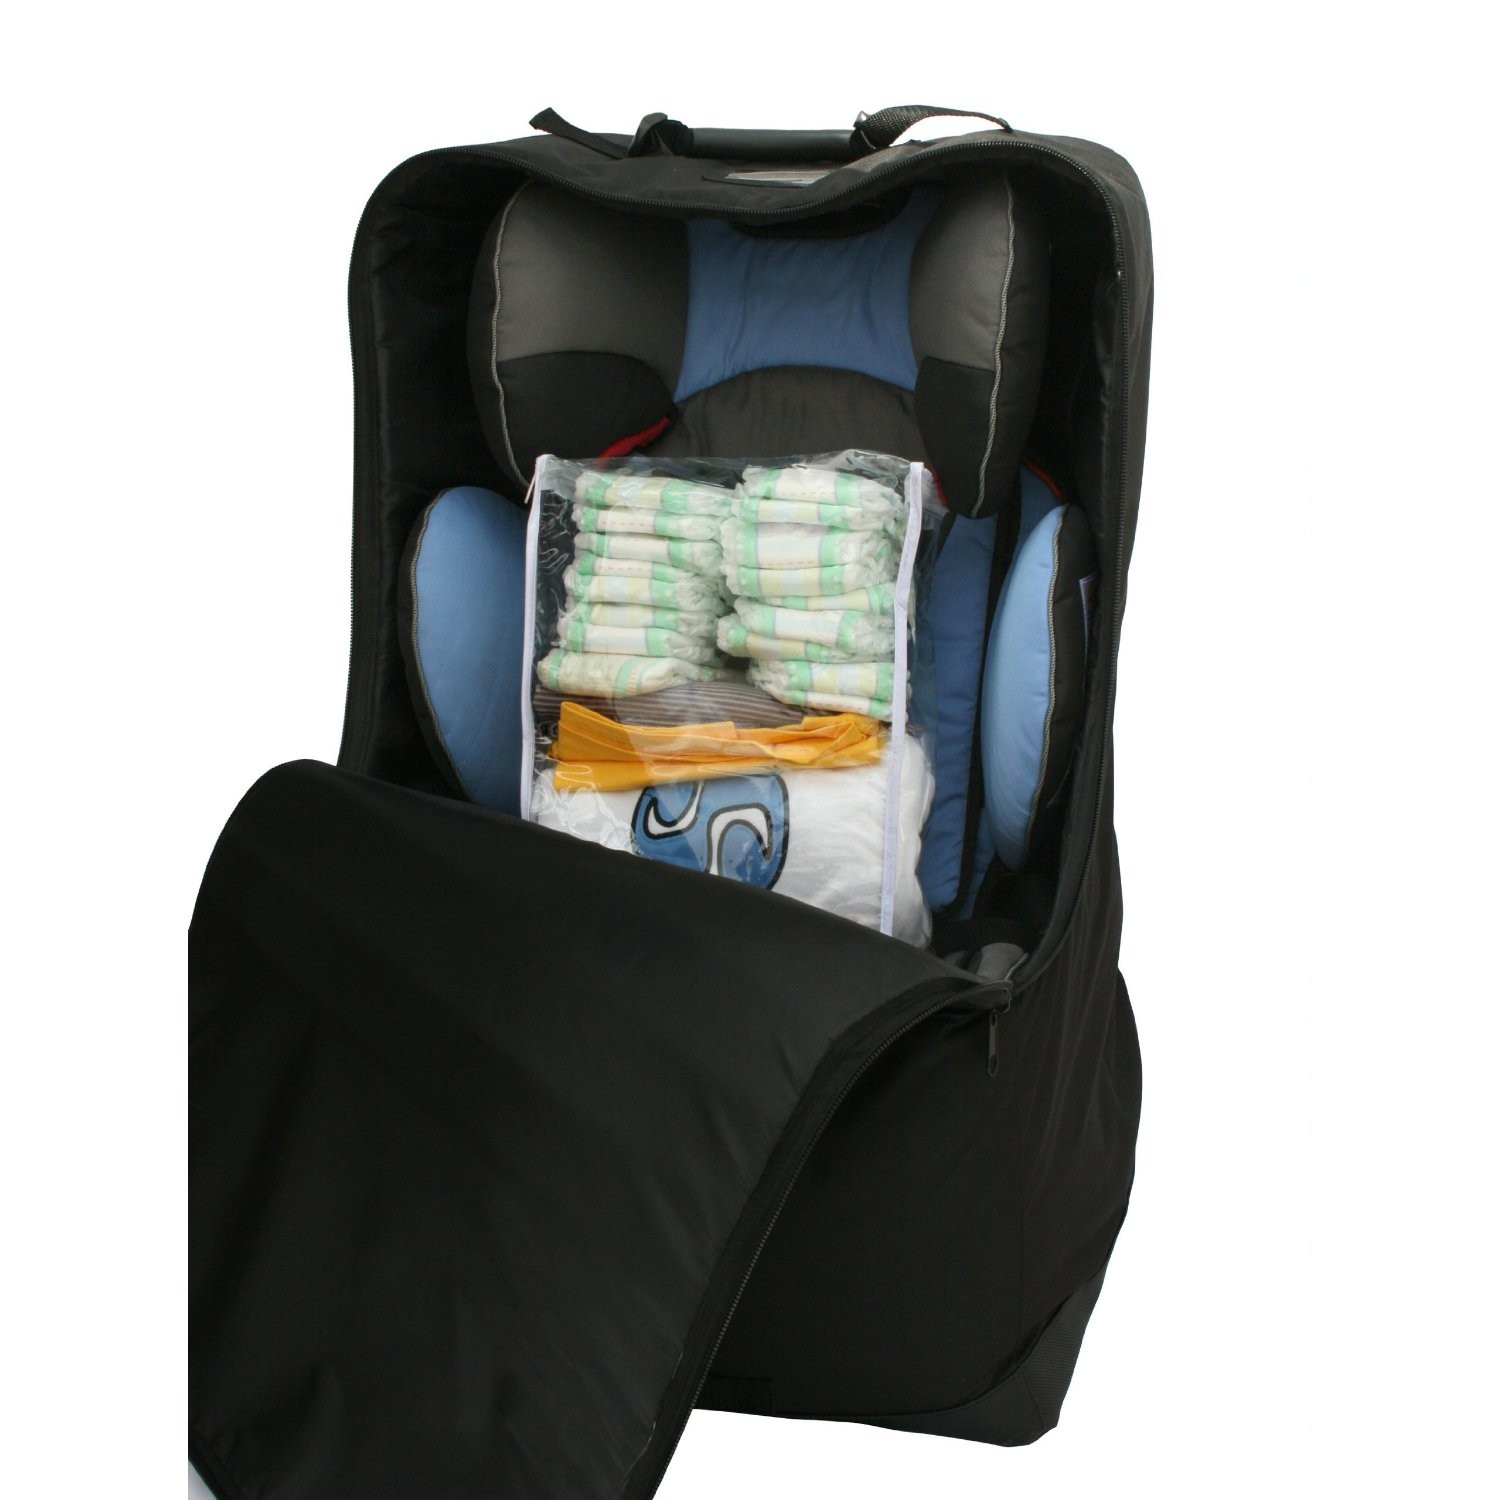 Elite Car Seat Travel Bag Giveaway